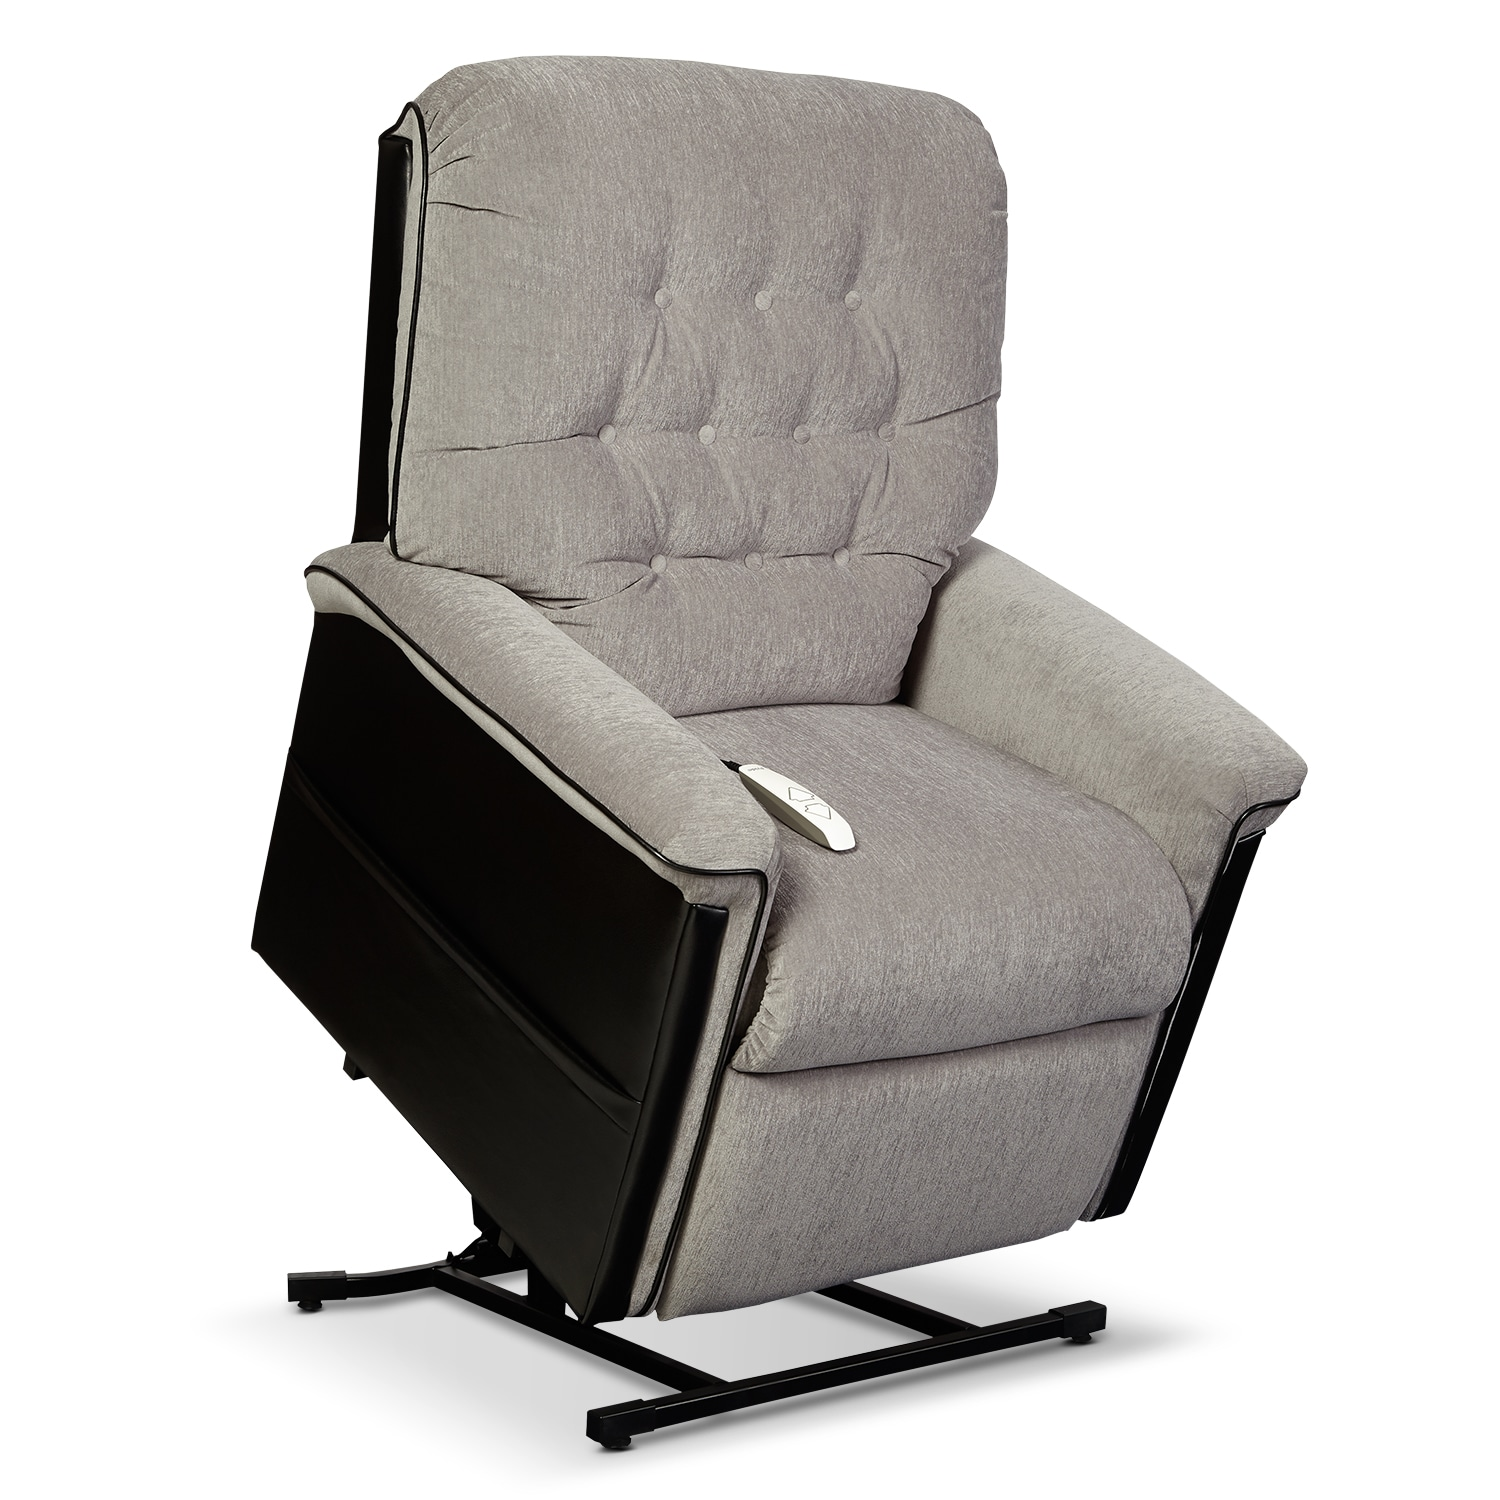 [Karmon Lift Chair - Black and Gray]